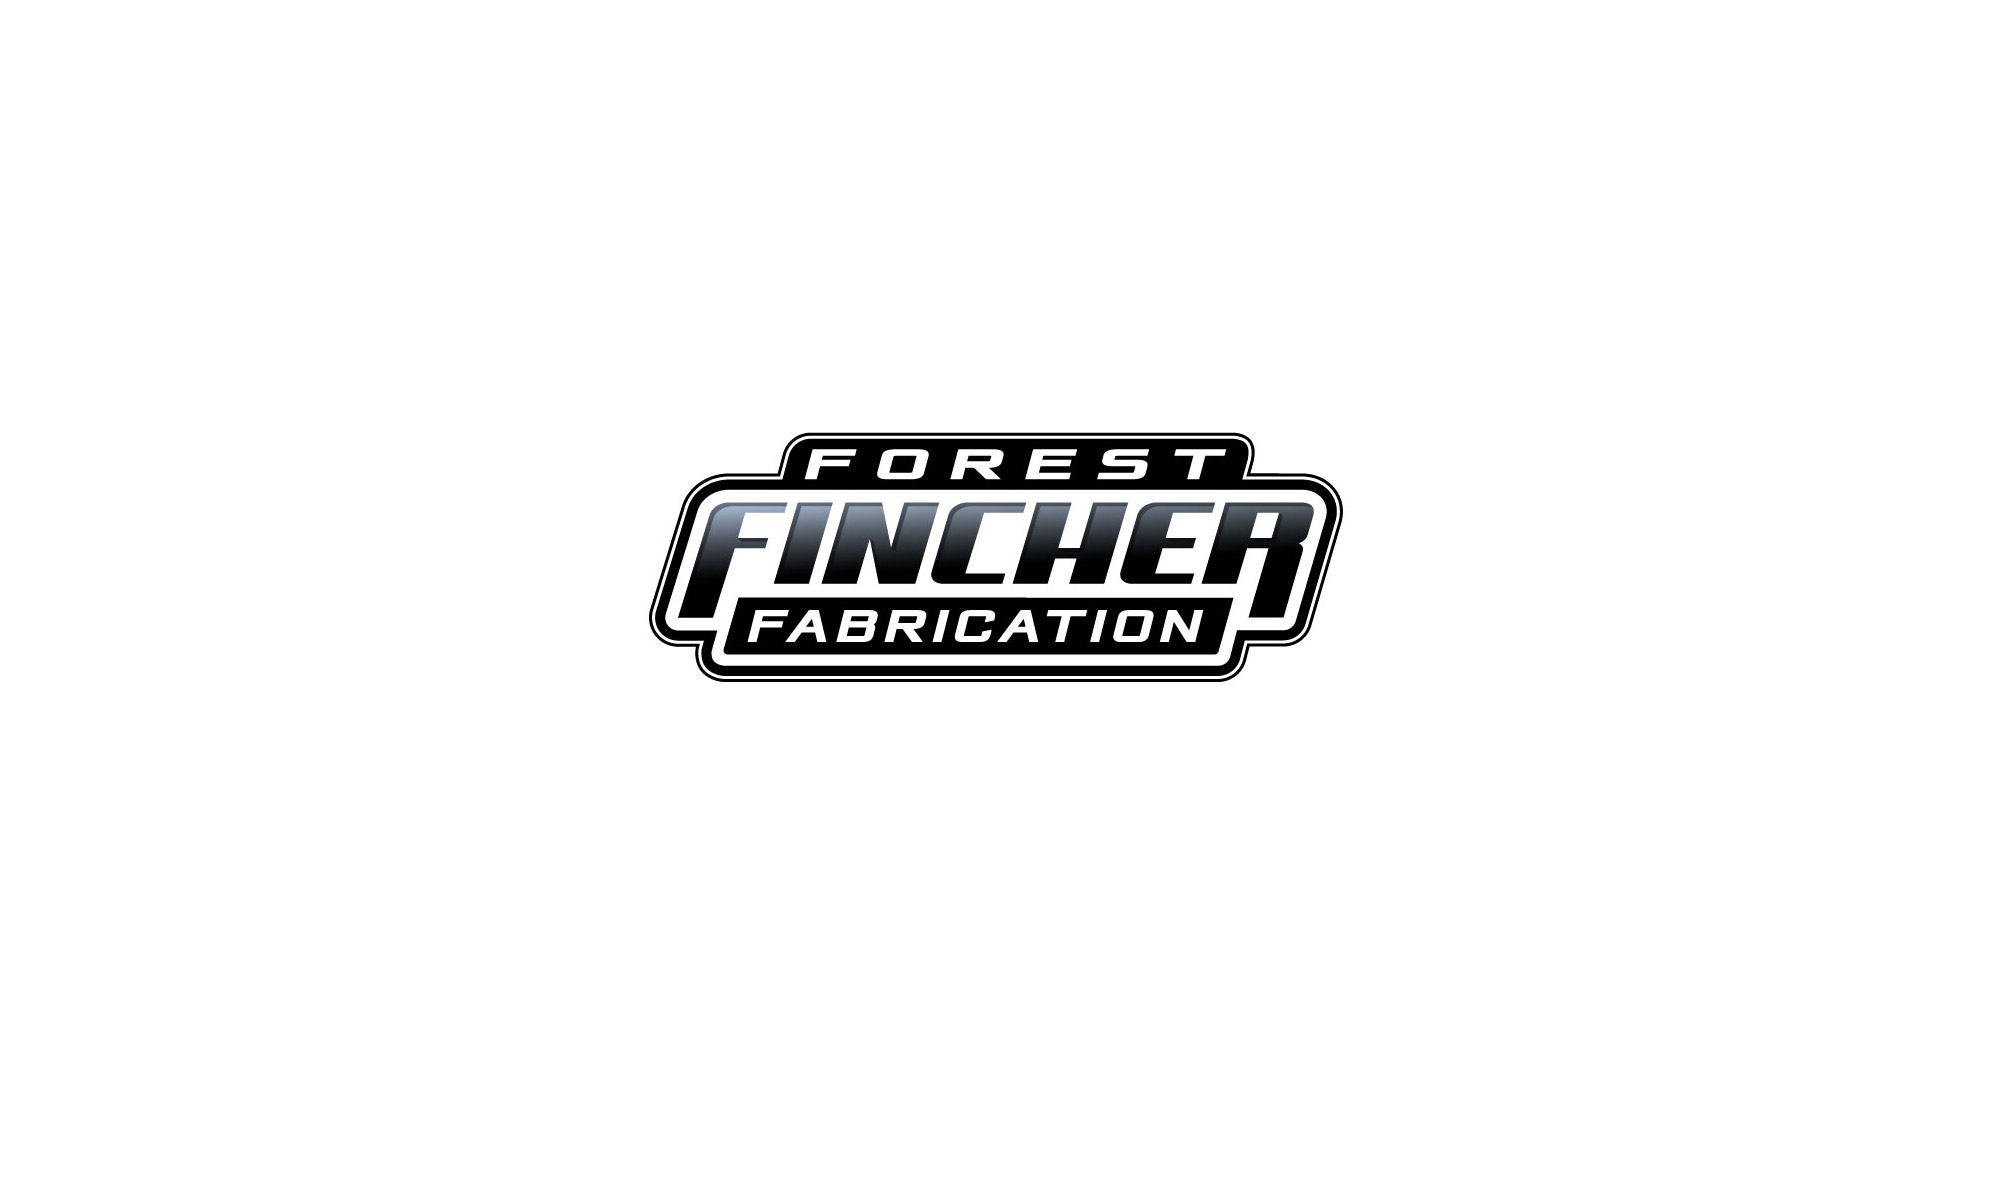 Forest Fincher Fabrication